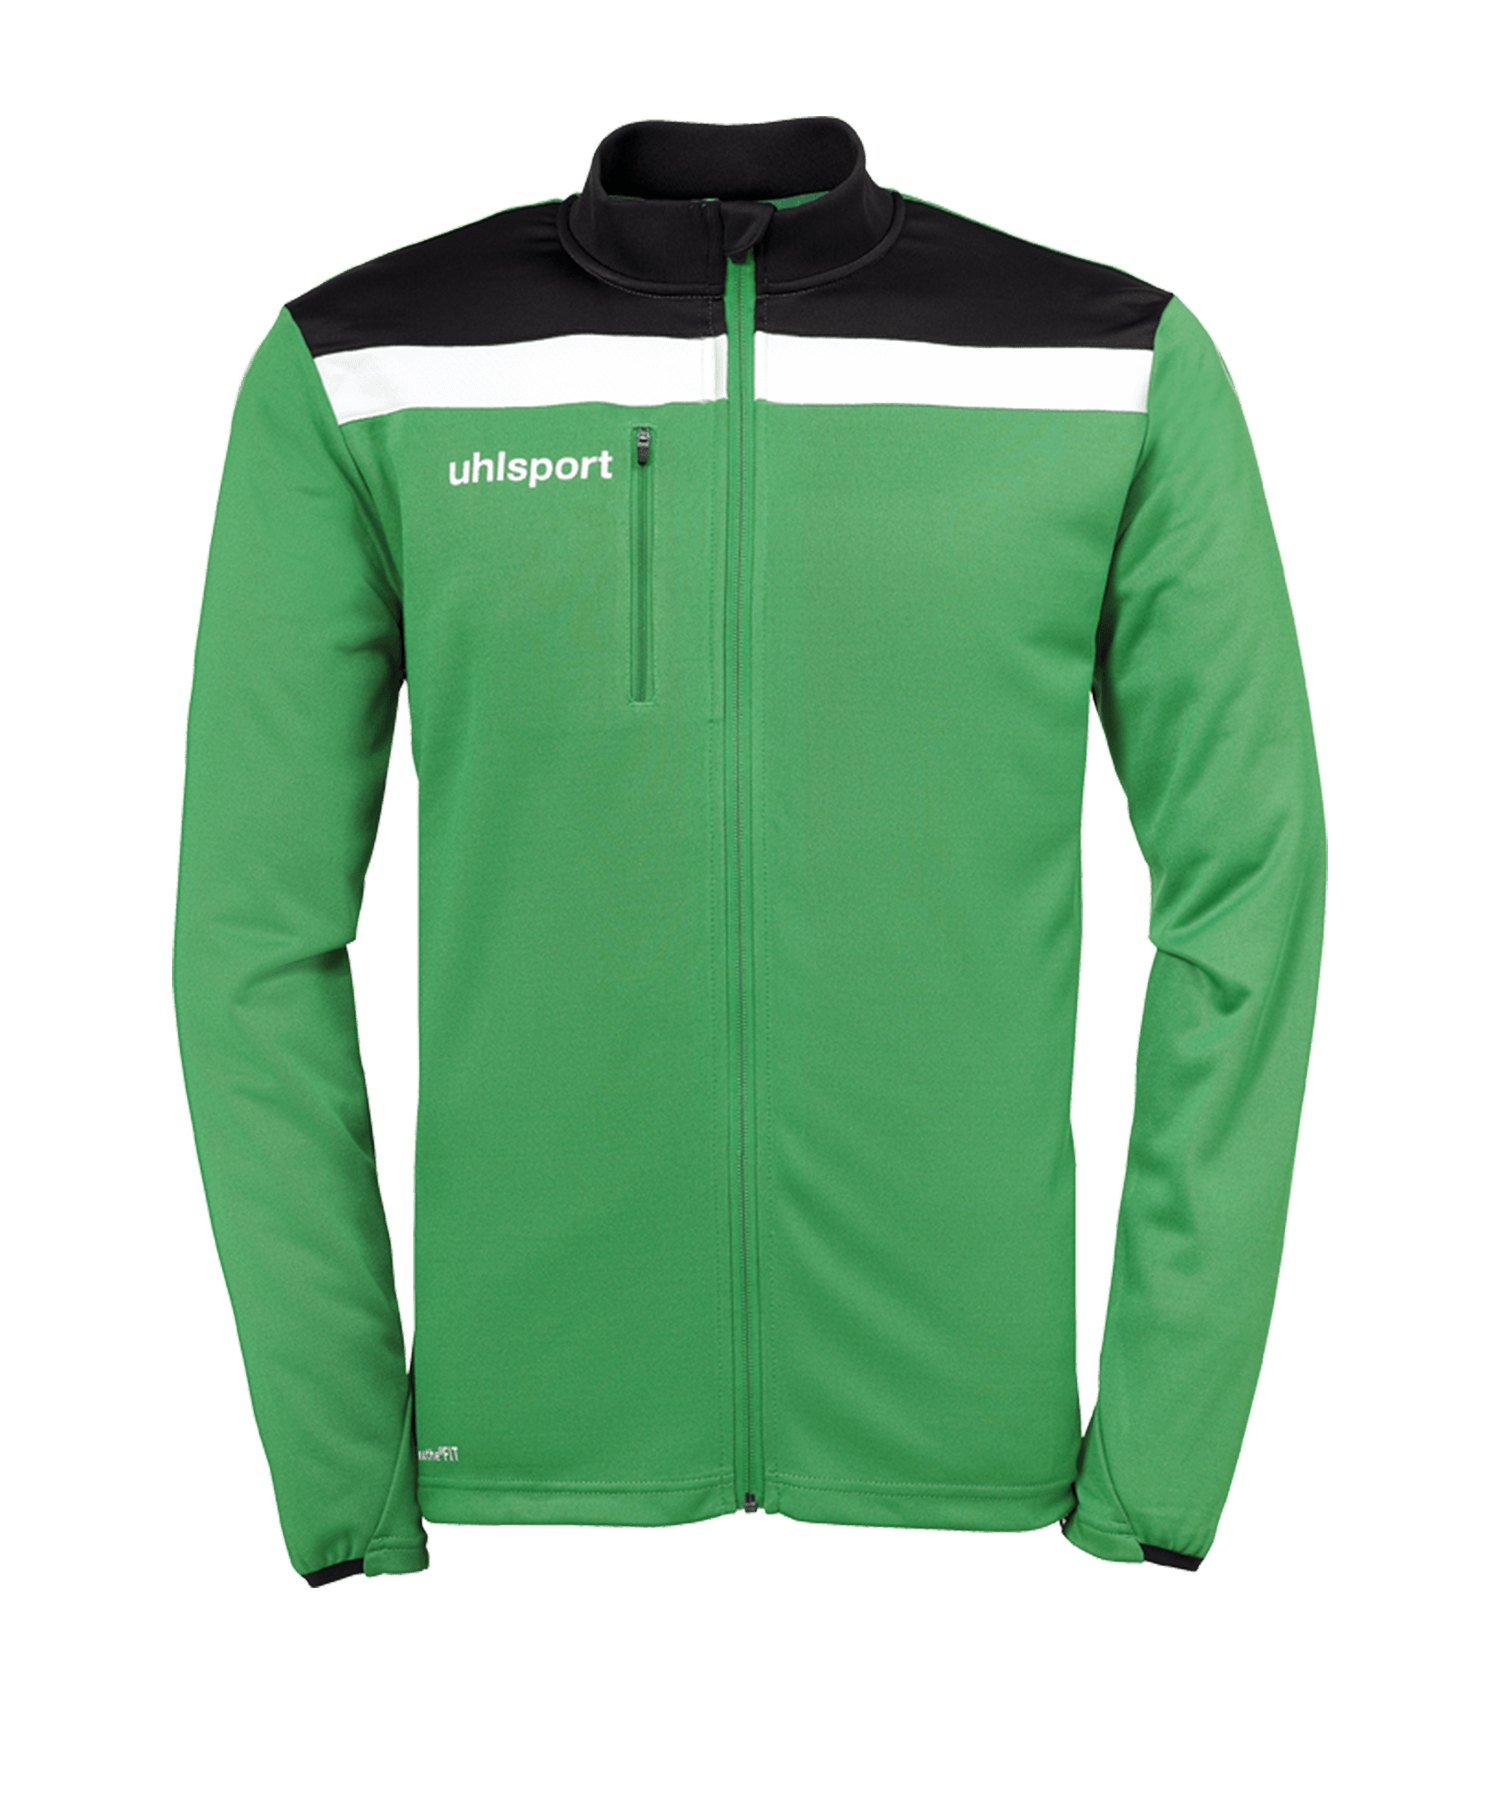 Uhlsport Offense 23 Trainingsjacke Kids Grün F06 - gruen